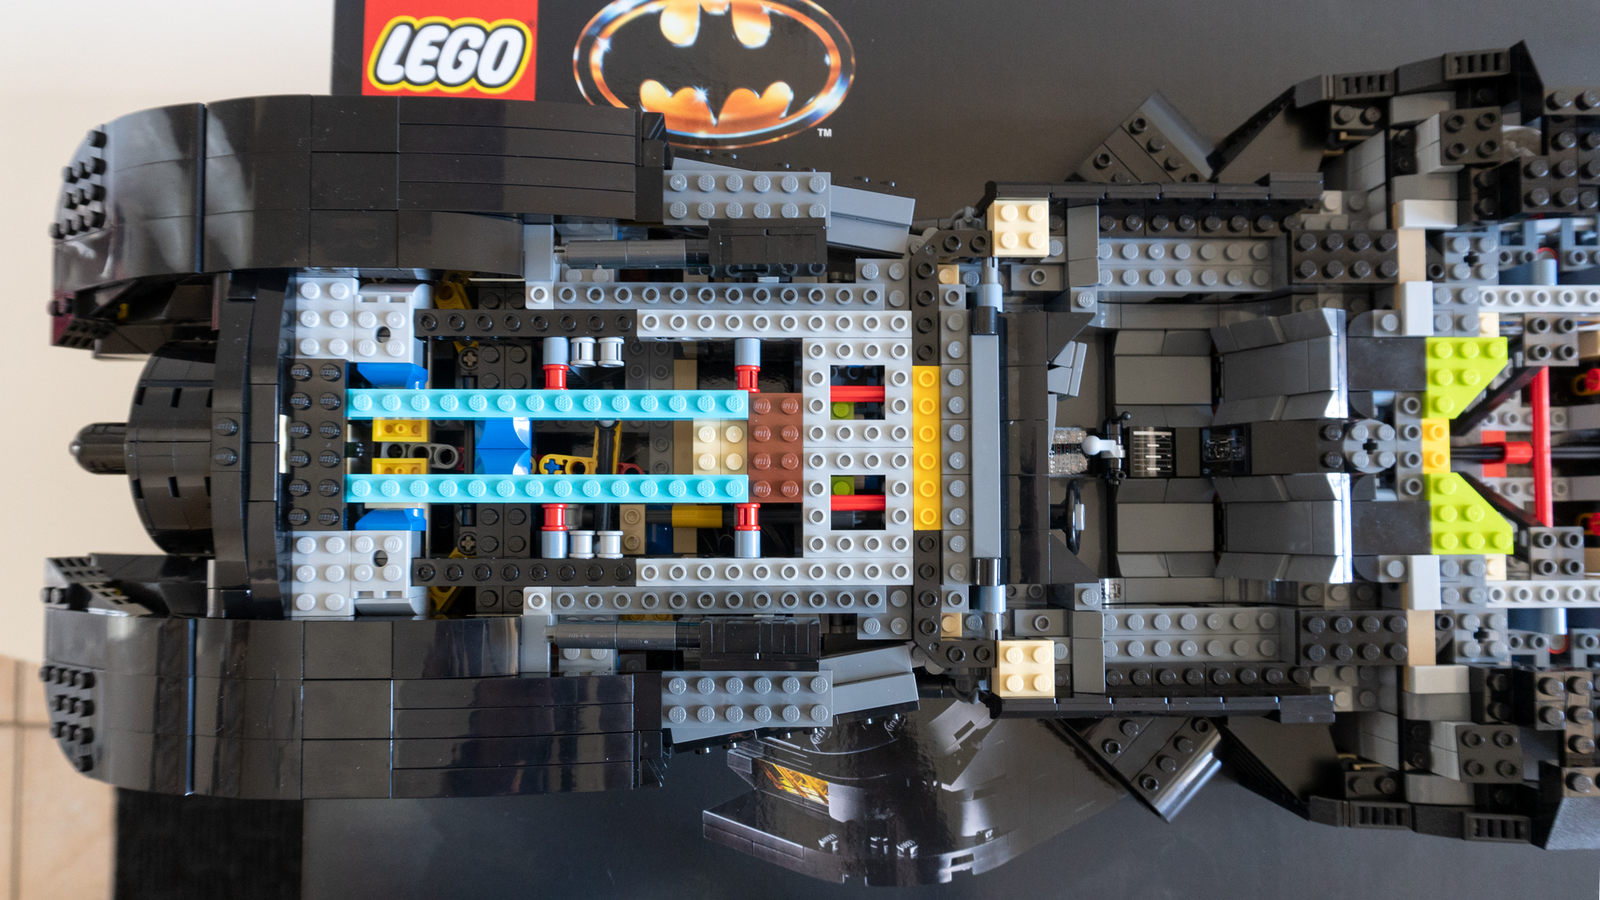 The 1989 Batmobile feels incredibly solid, thanks to a sturdy Lego Technic frame hidden beneath its exterior.